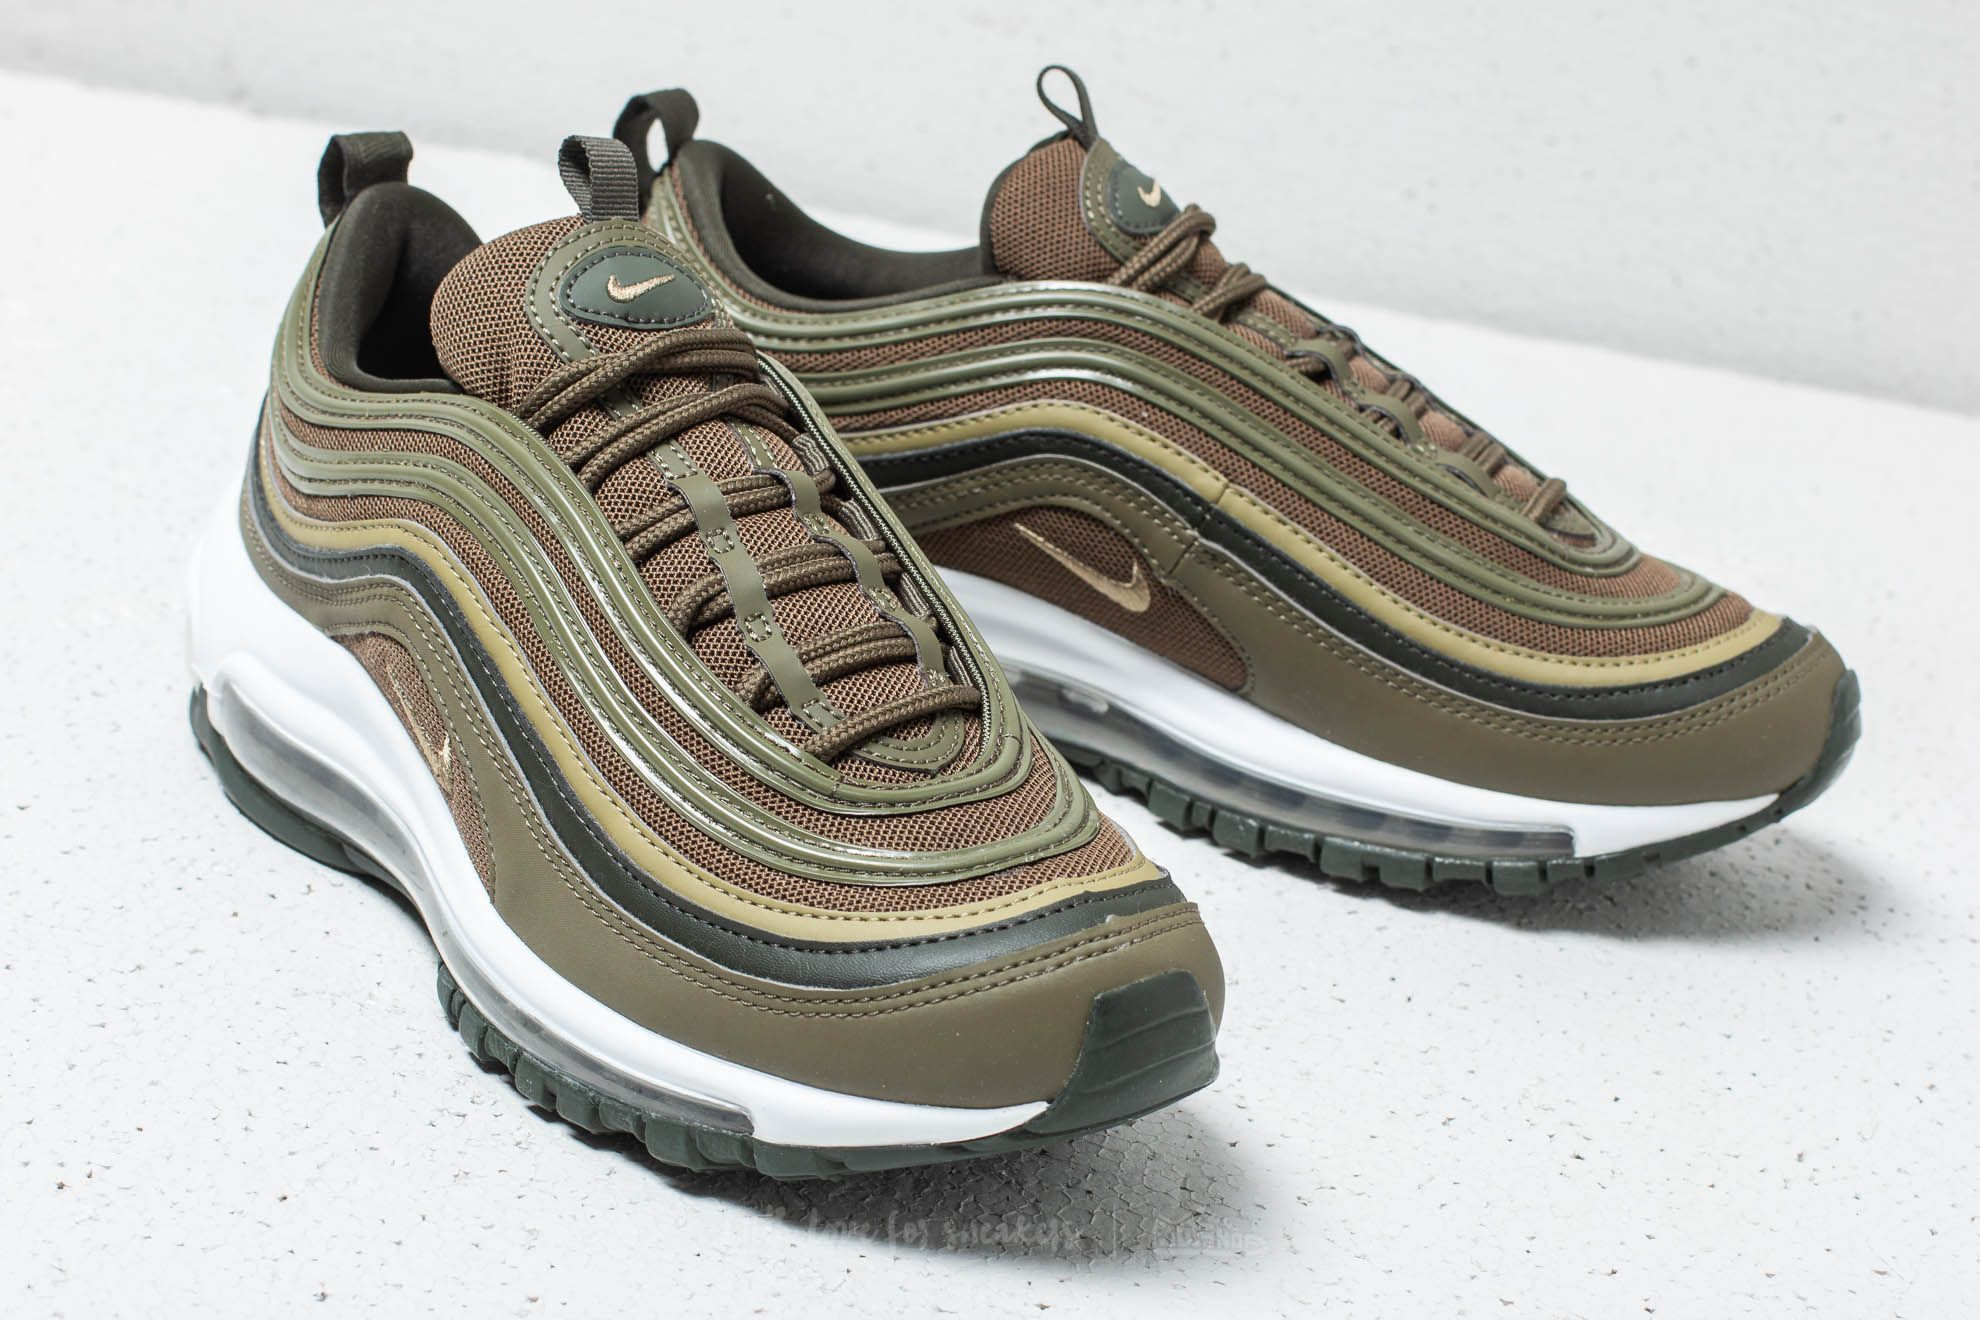 ... green khaki sneaker 267f6 5d40f  promo code for nike air max 97 w  medium olive neutral olive at a great price 62ce3abde